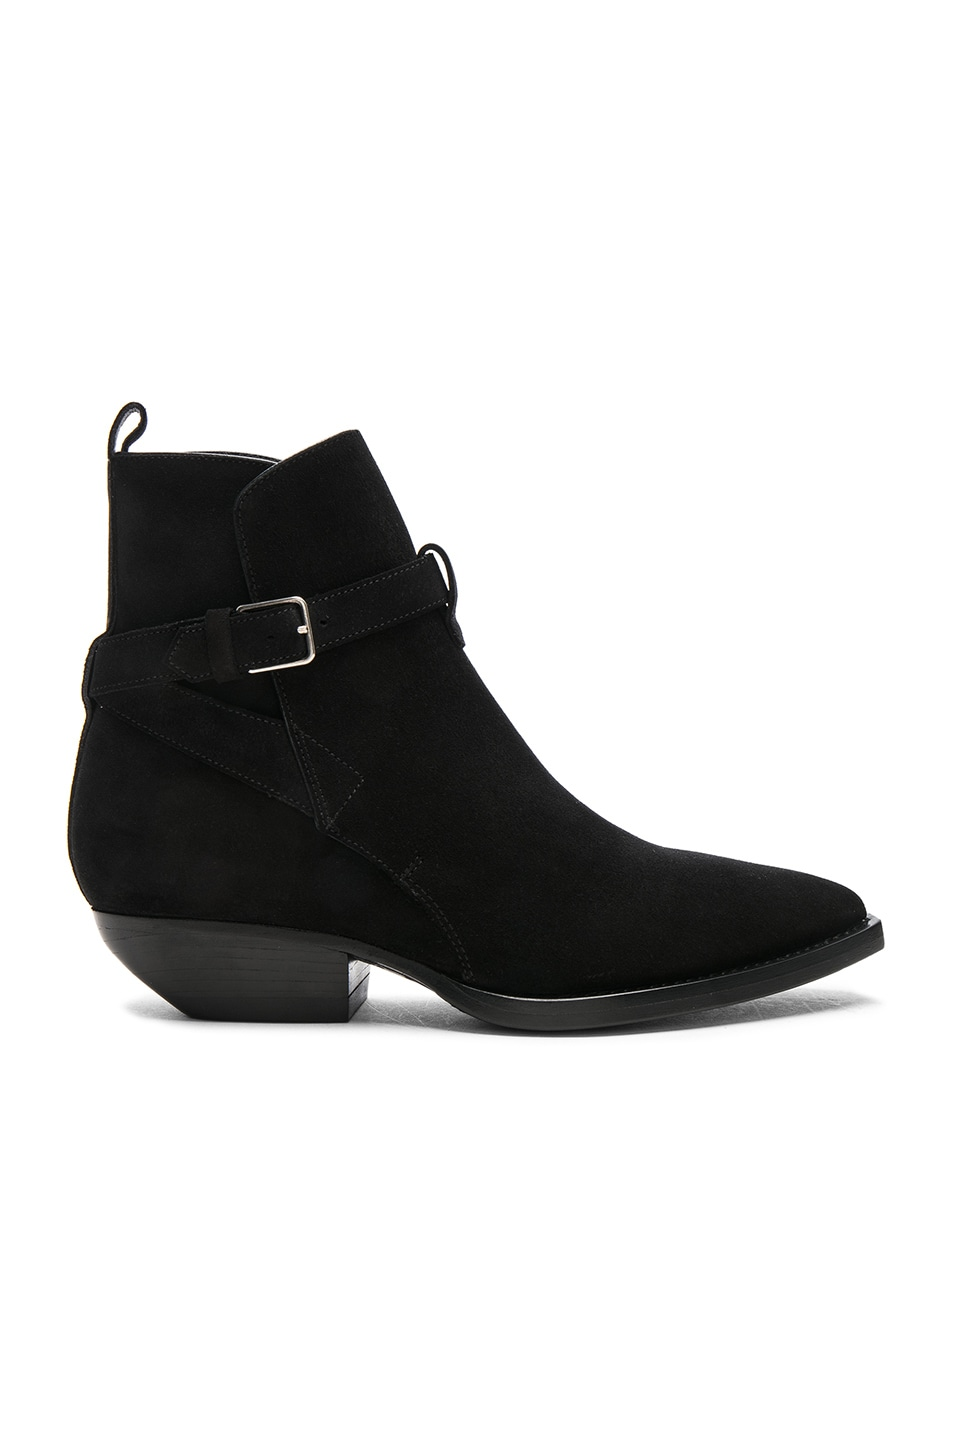 Image 1 of Saint Laurent Suede Theo Jodhpur Boots in Black